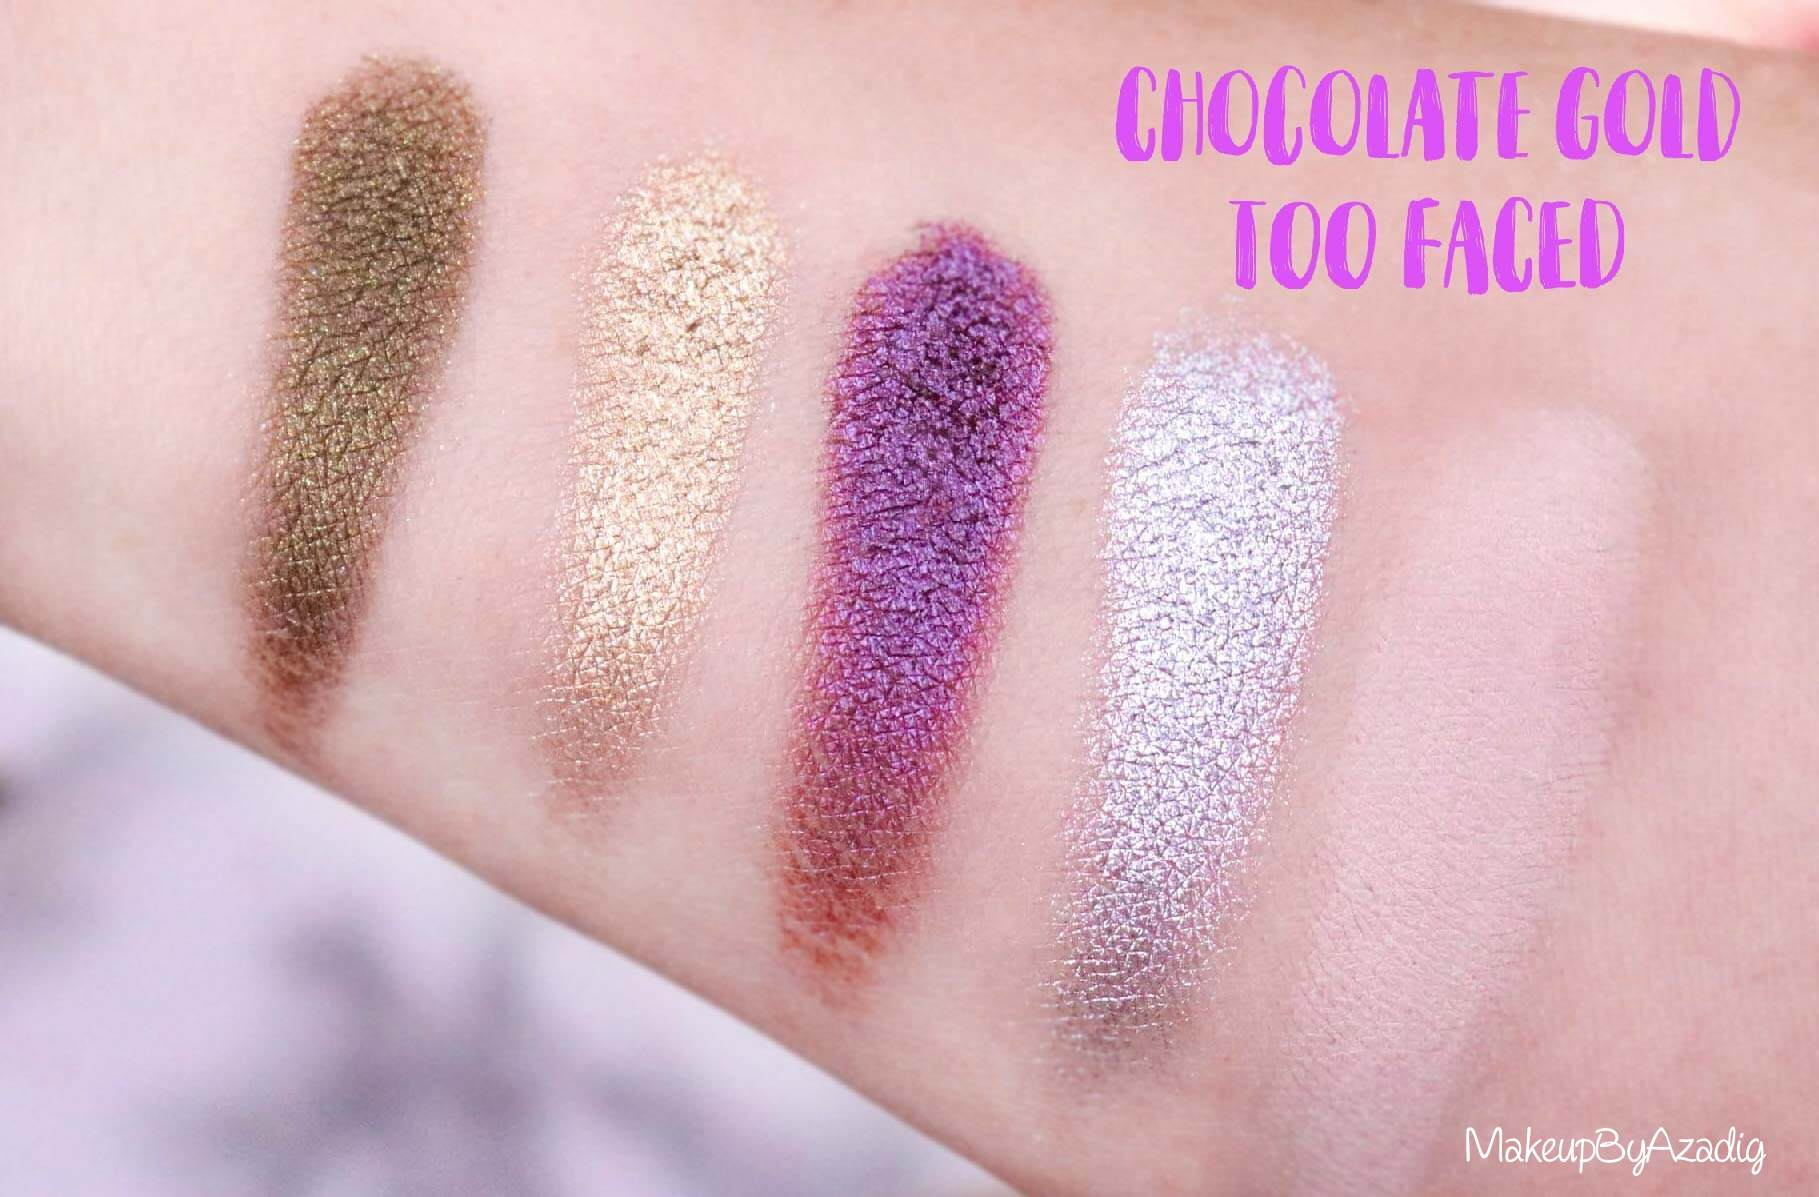 purple-revue-palette-too-faced-chocolate-gold-review-swatch-swatches-avis-prix-makeupbyazadig-influencer-miniature-2